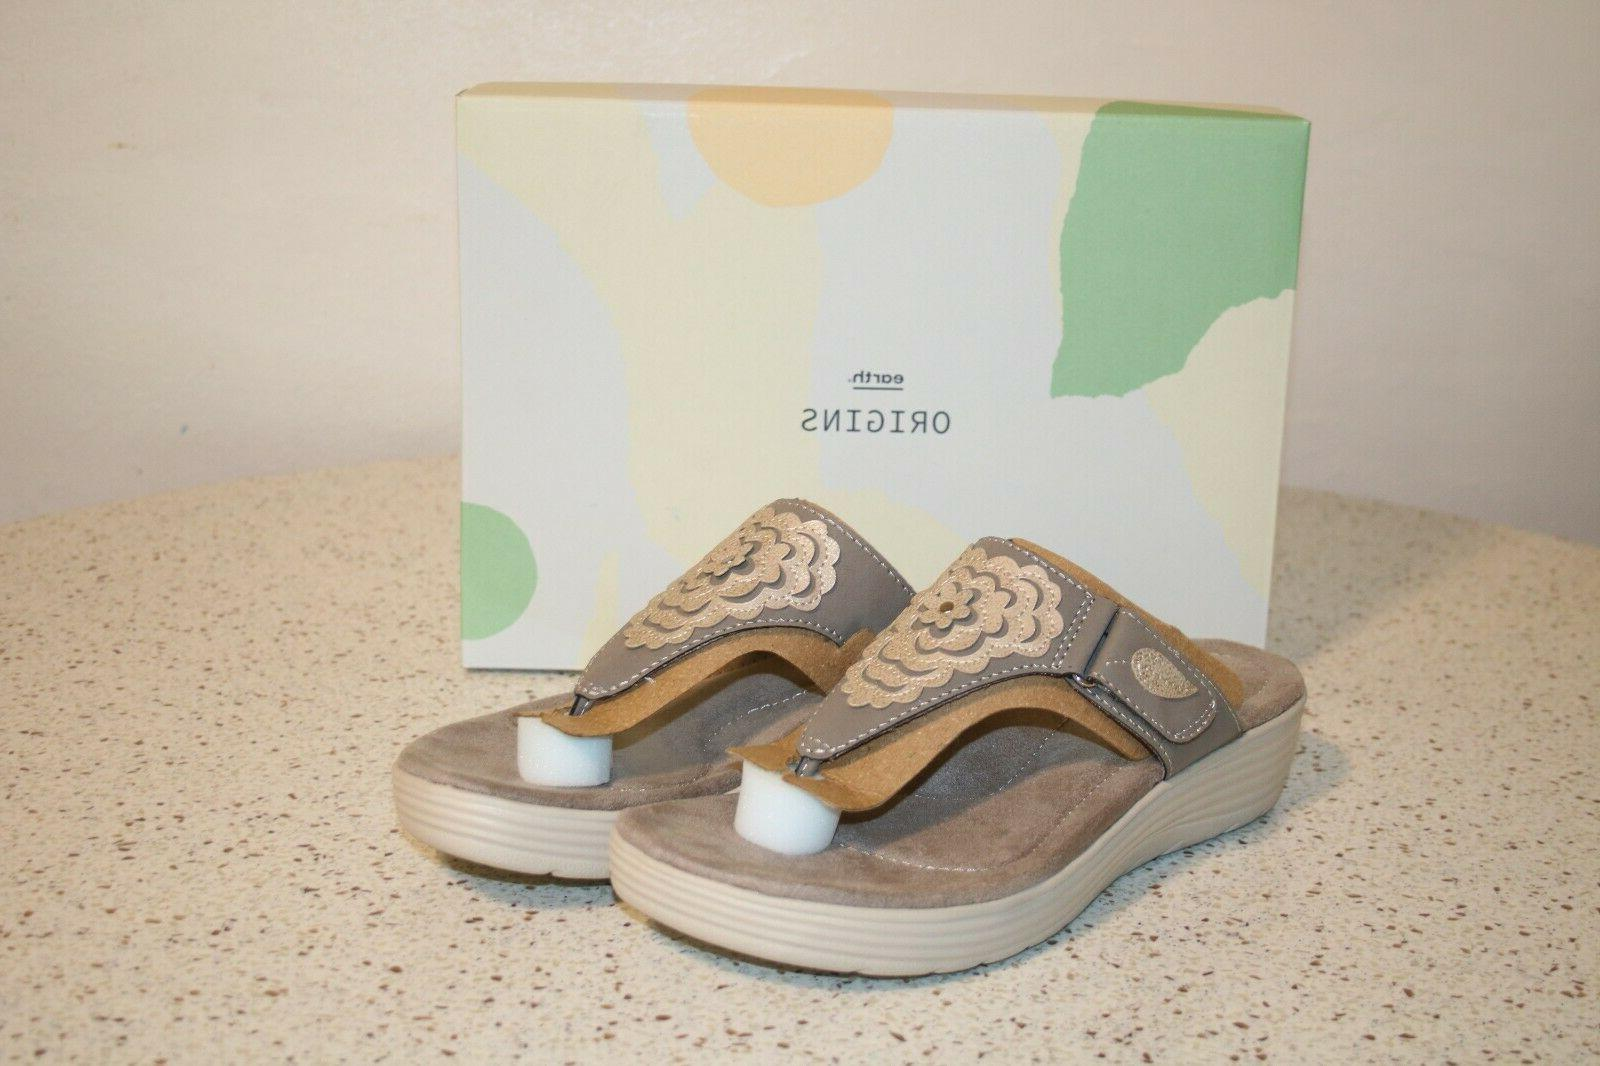 Thong Sandals Size US 10 M